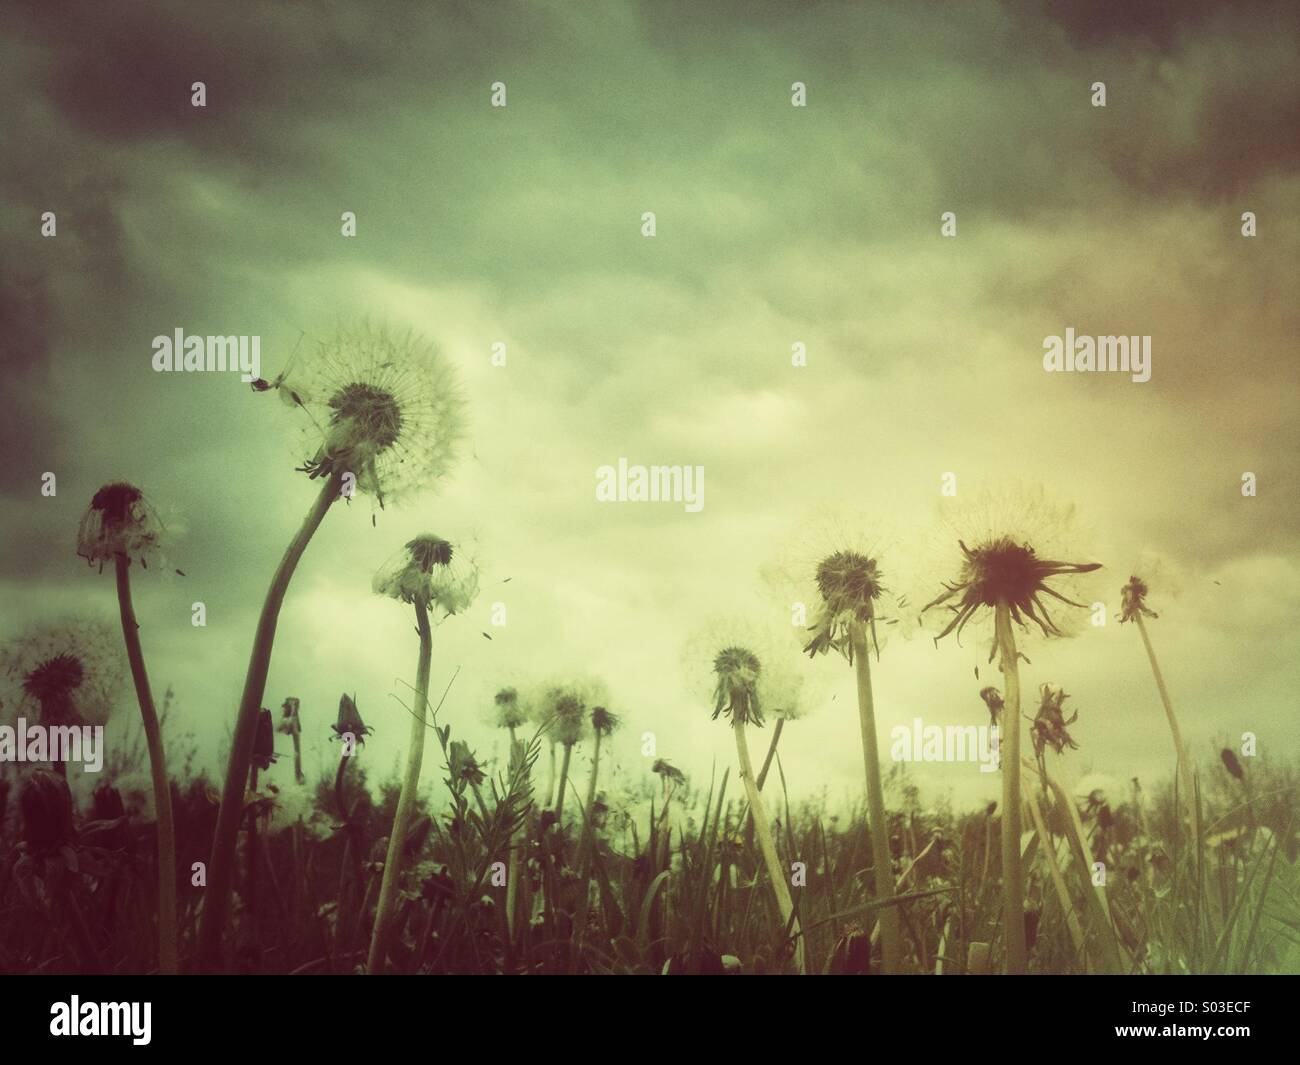 Dandelions with grunge effect filter. - Stock Image